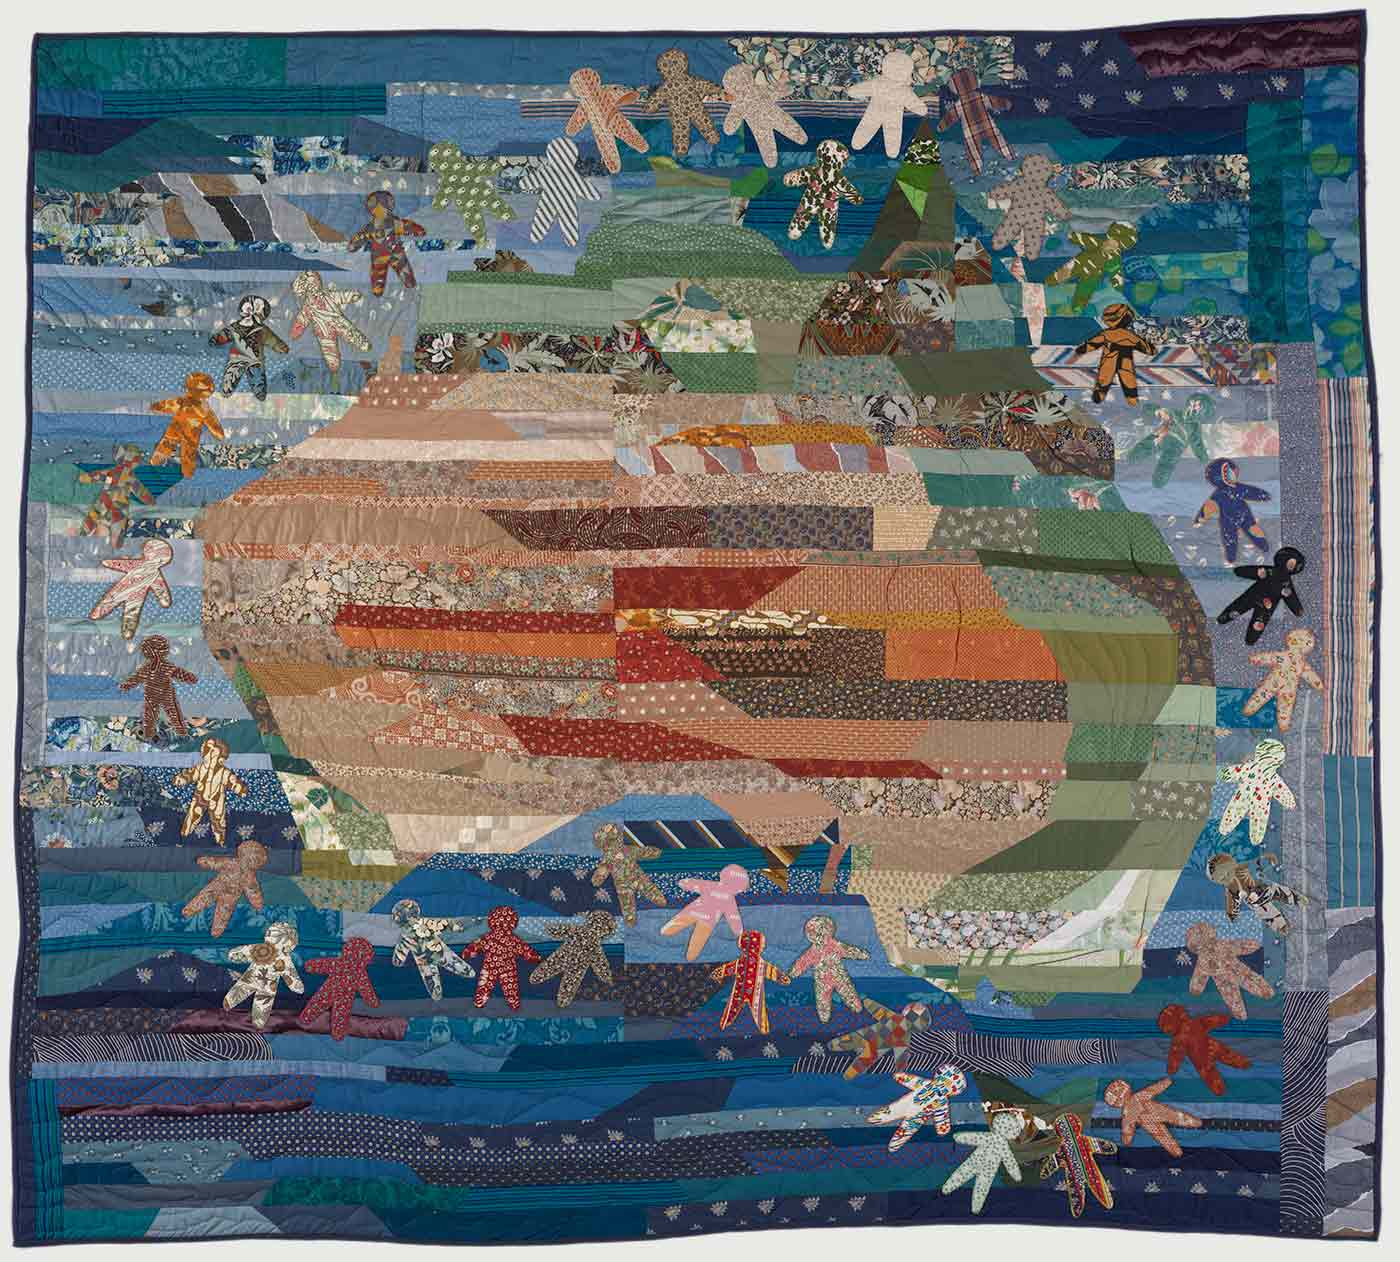 Colour photo of a patchwork quilt featuring human figures surrounding the Australian continent. - click to view larger image